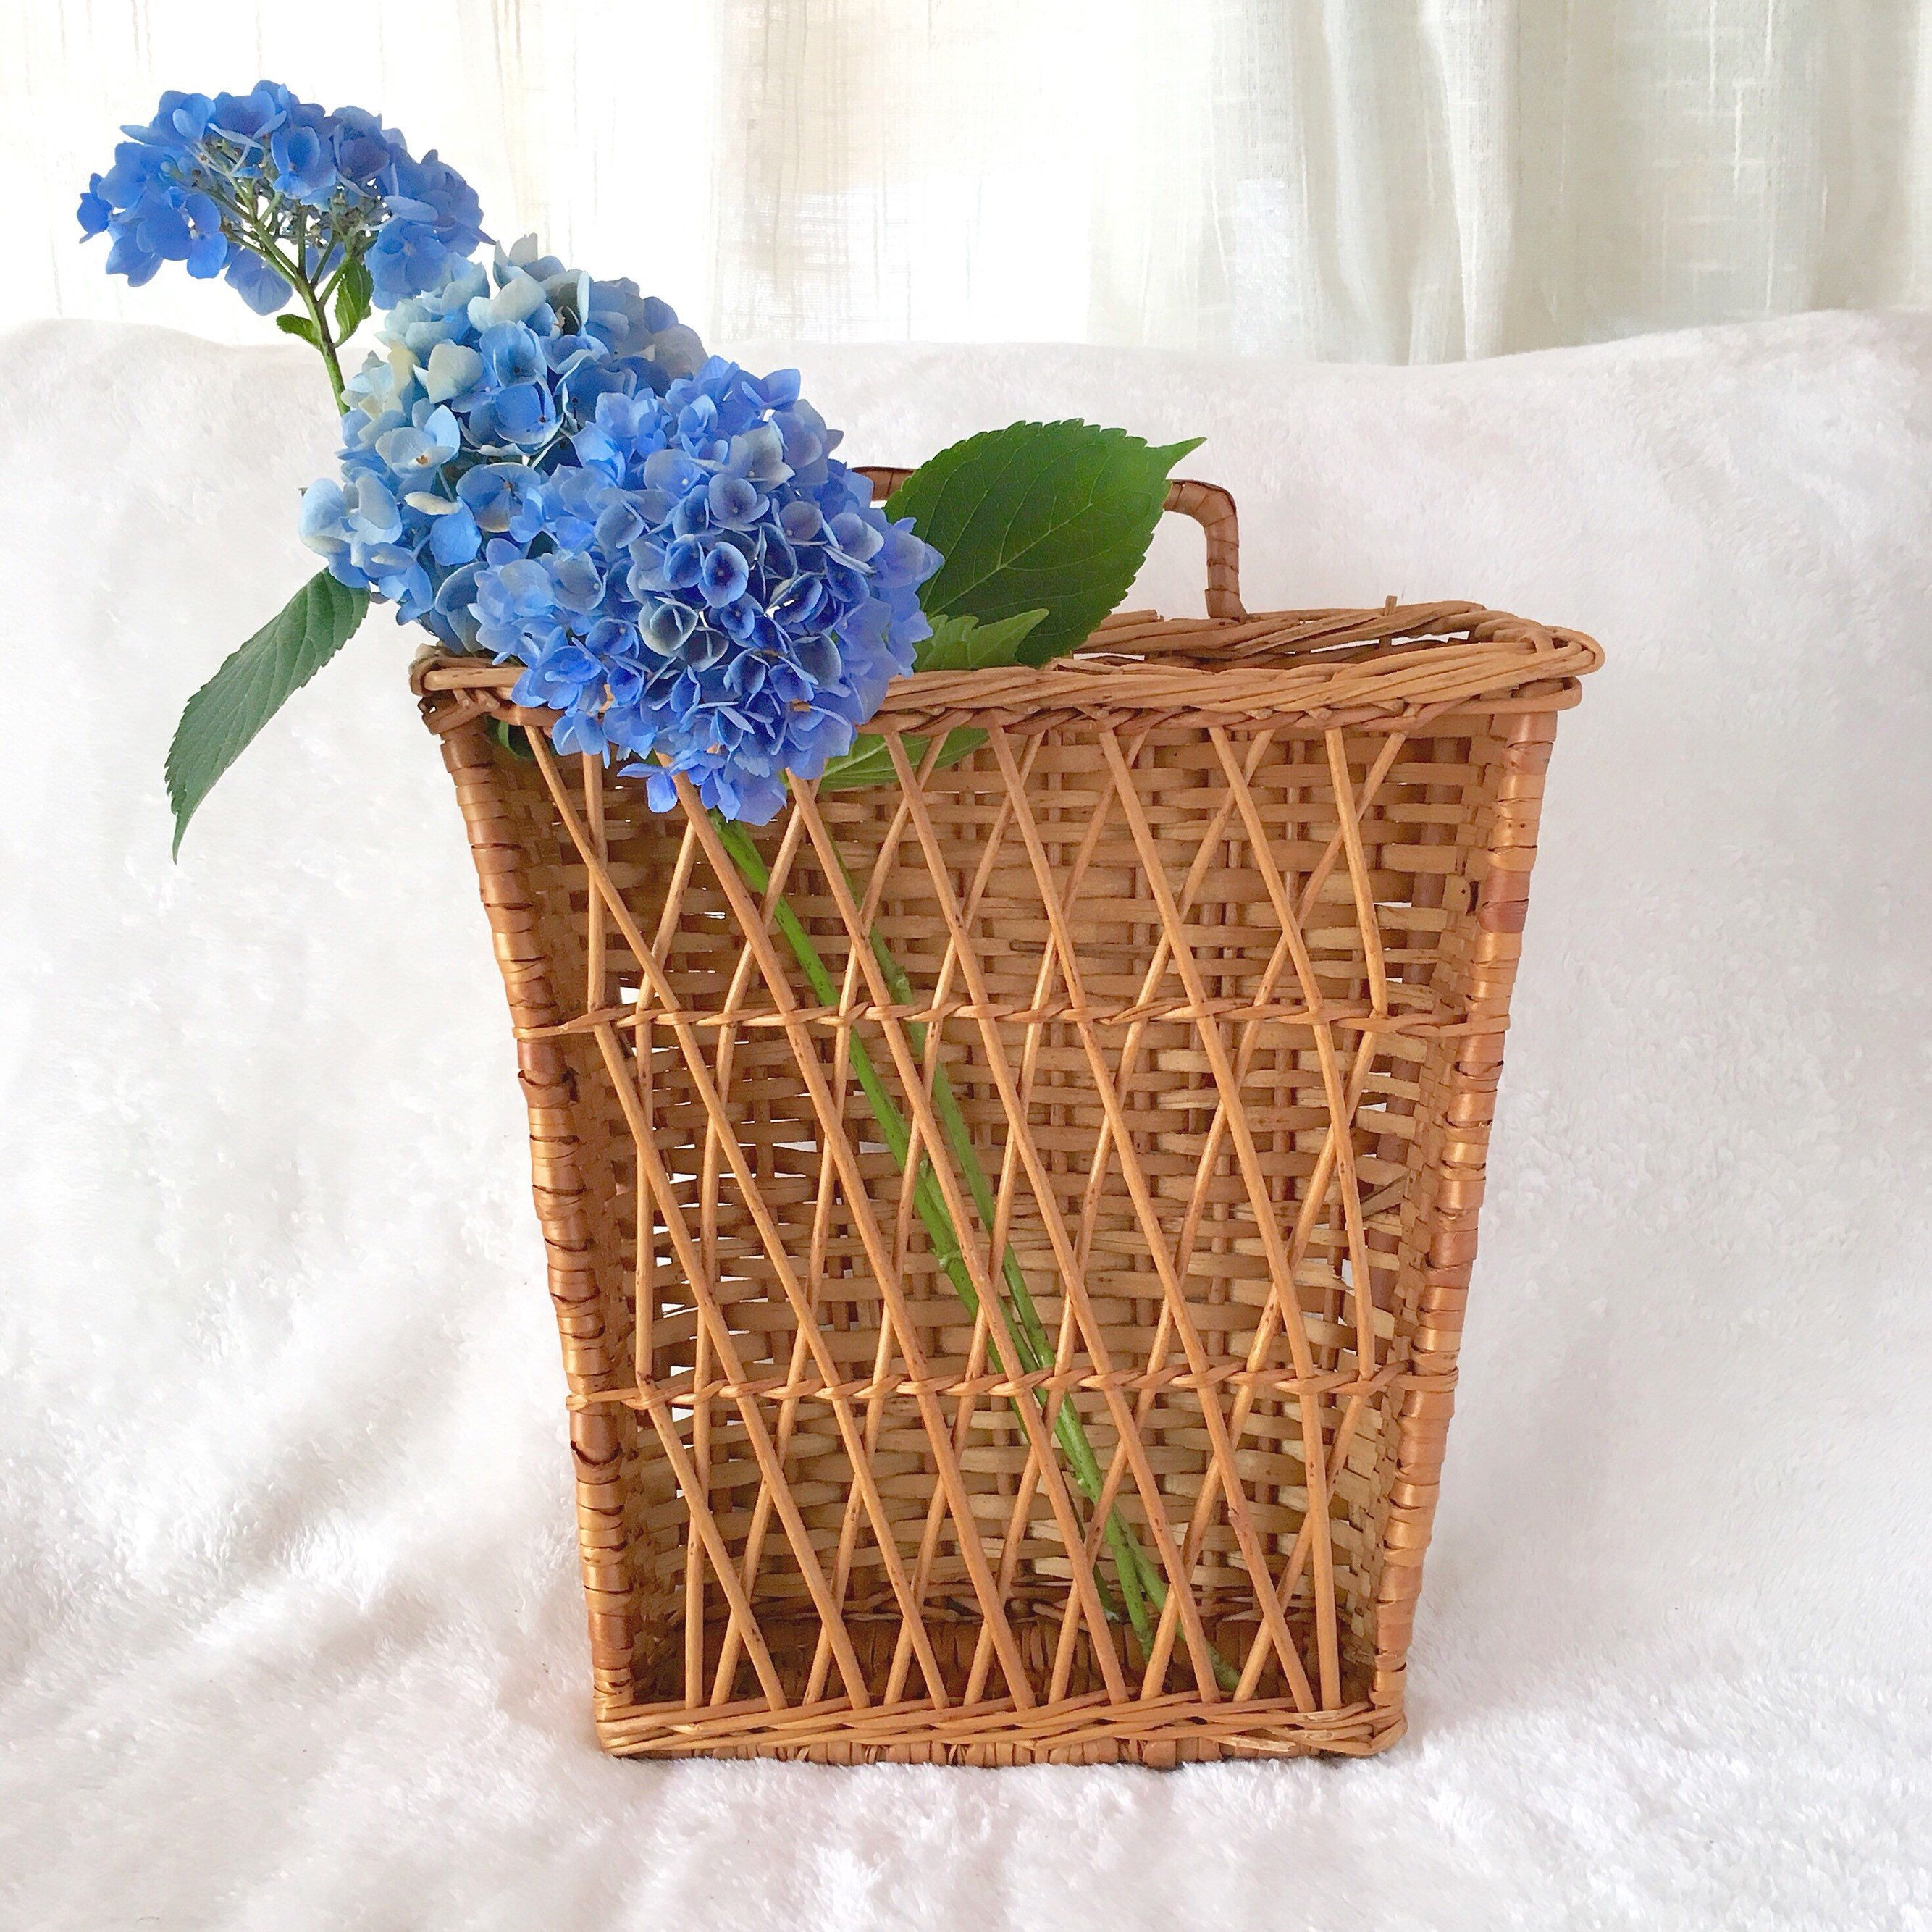 large floral vase of large wall basket pocket hanging with handle greenery vase farmhouse inside large wall basket pocket hanging with handle greenery vase farmhouse style storage organization woven wicker natural bohemian boho hygge